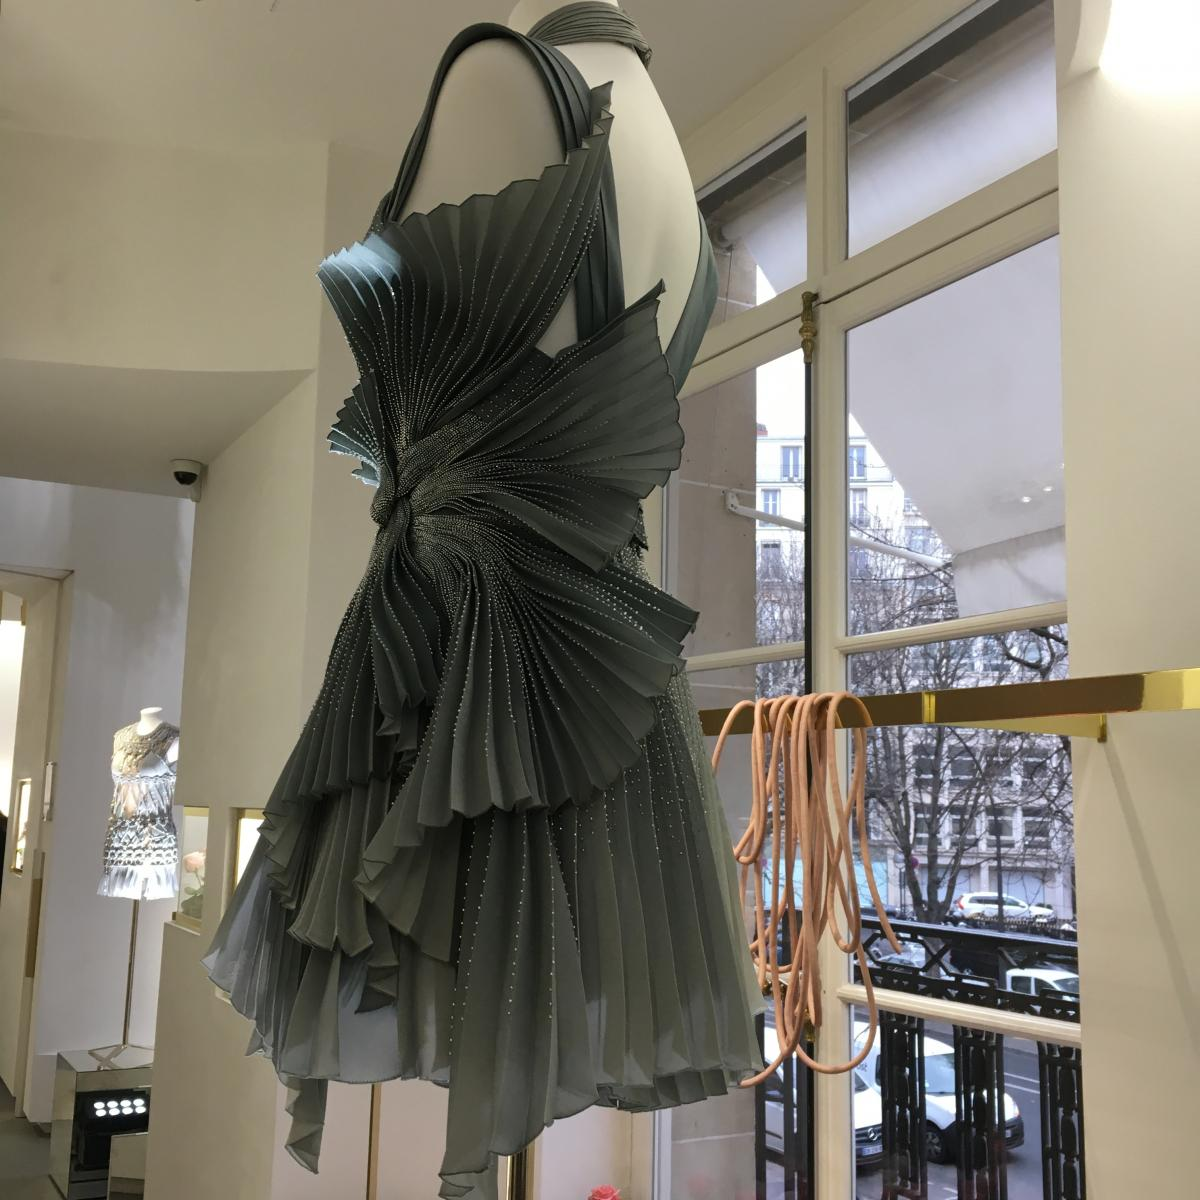 Versace Atelier ss2017 as shown in their showroom on Avenue Montaigne in Paris